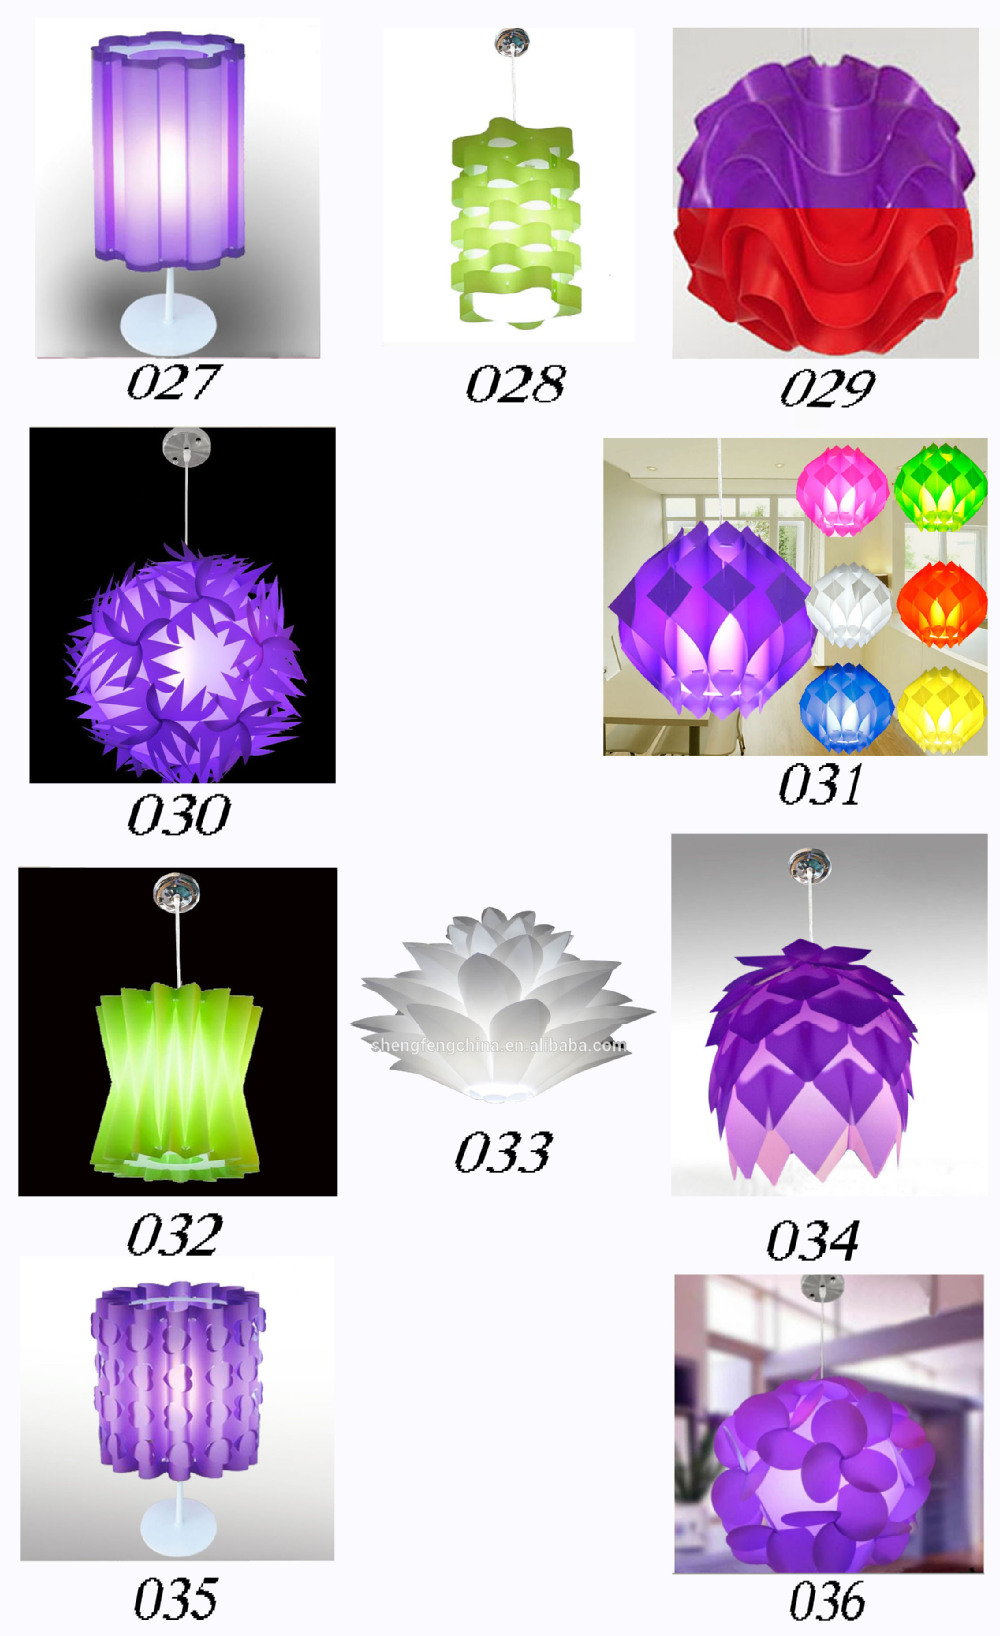 Iq Lamp Instructions - Buy Iq Lamp Instructions,Iq Jigsaw Puzzle ...